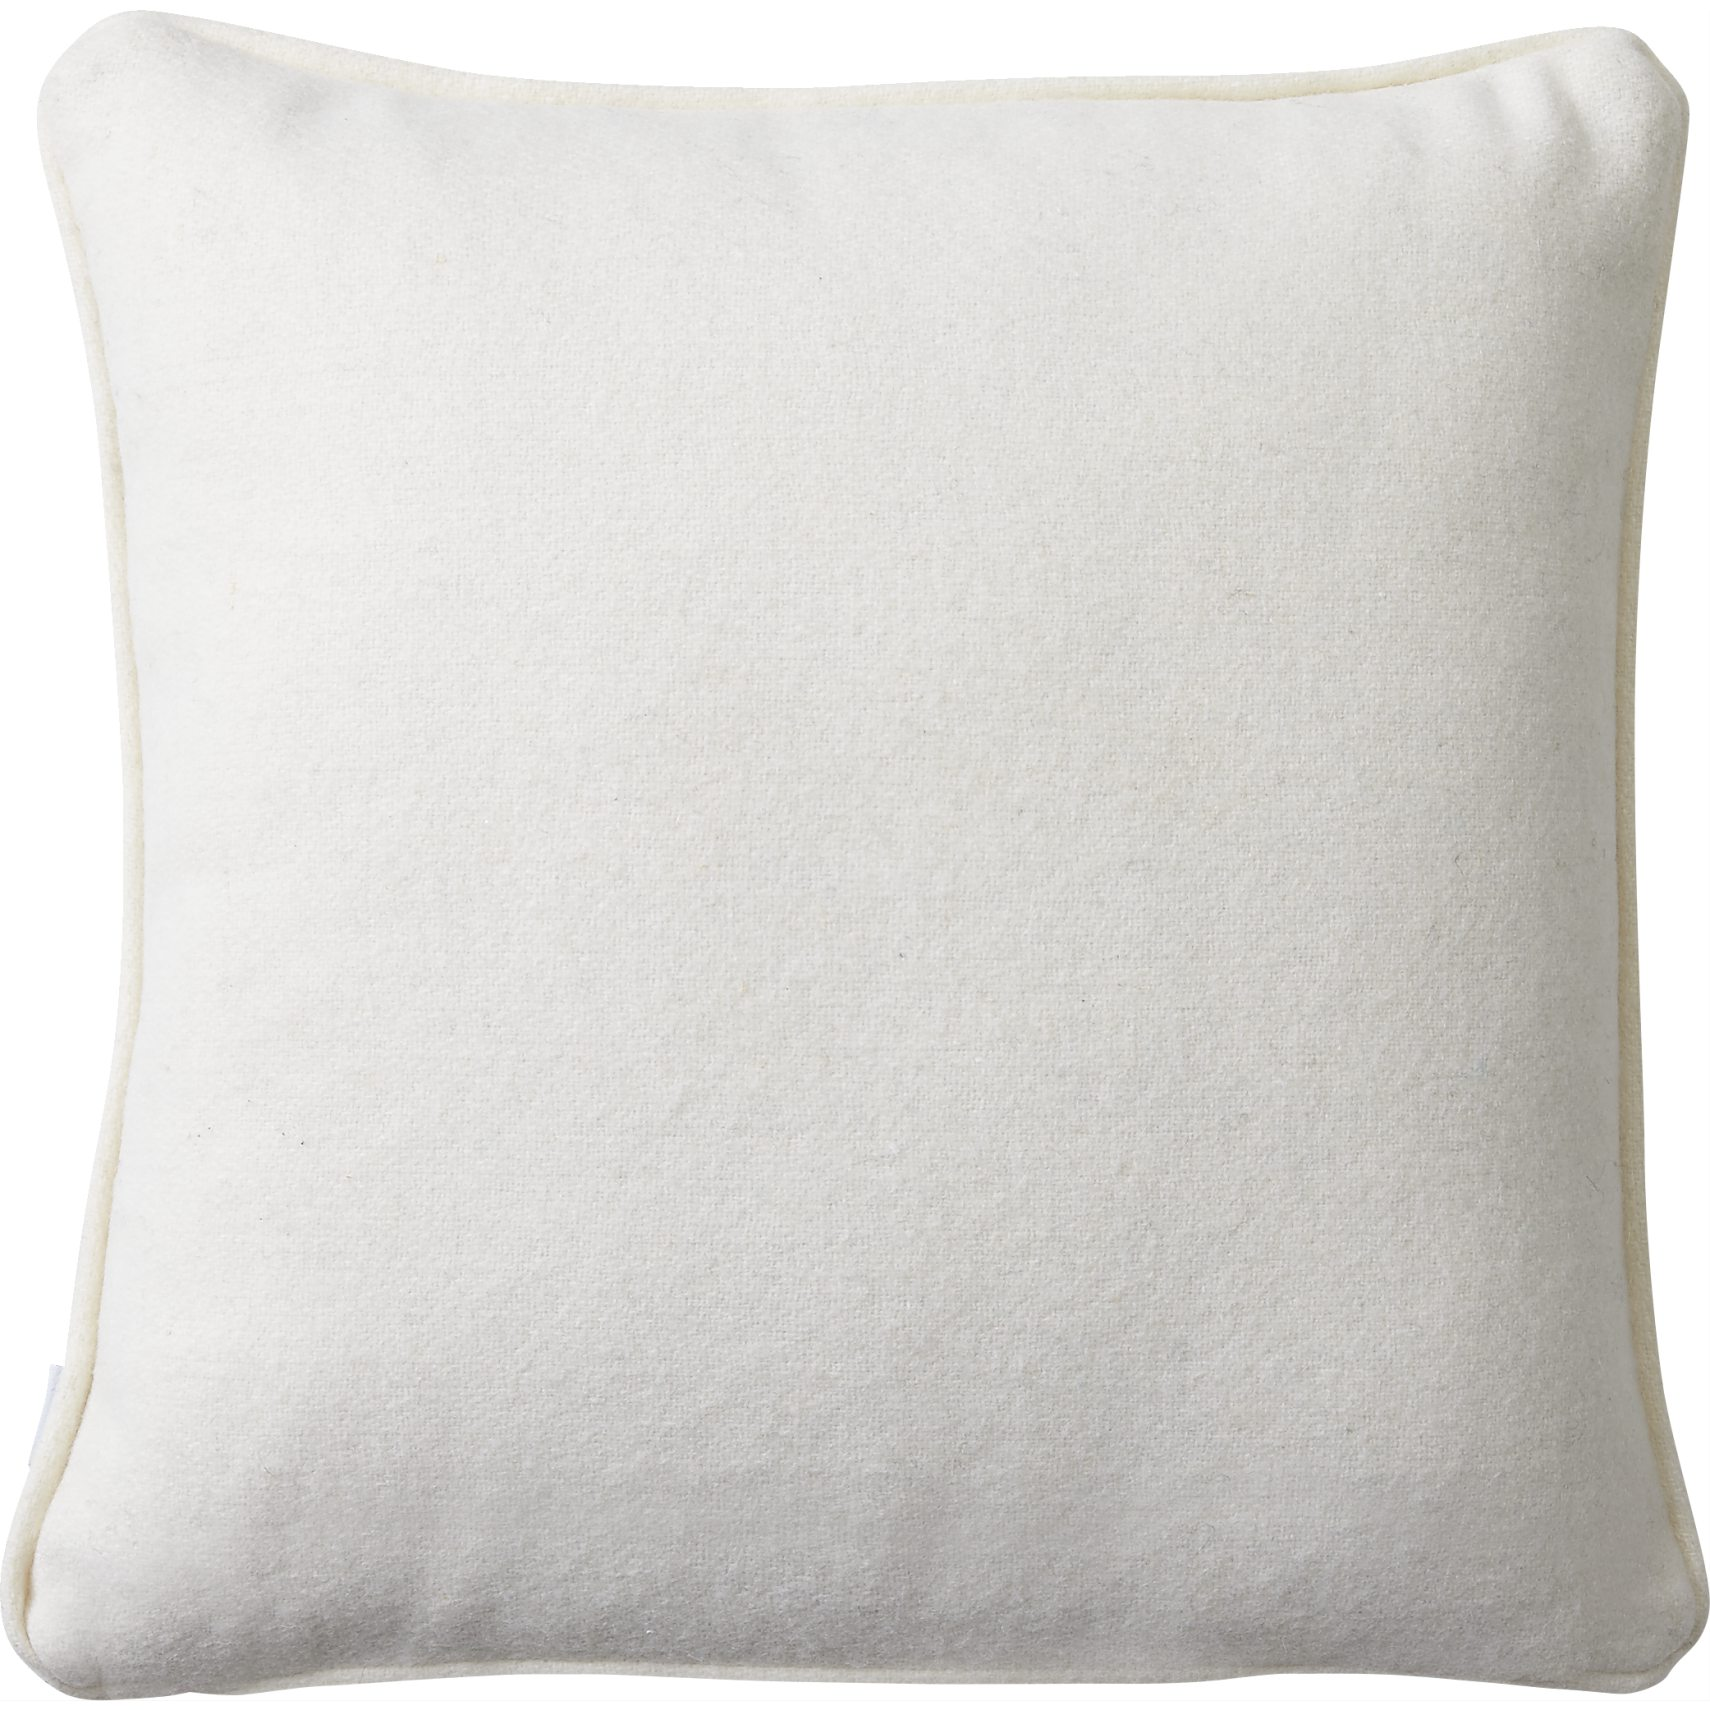 Amadora Pude 40 x 40 x 10 cm - Offwhite genbrugsuld og offwhite piping